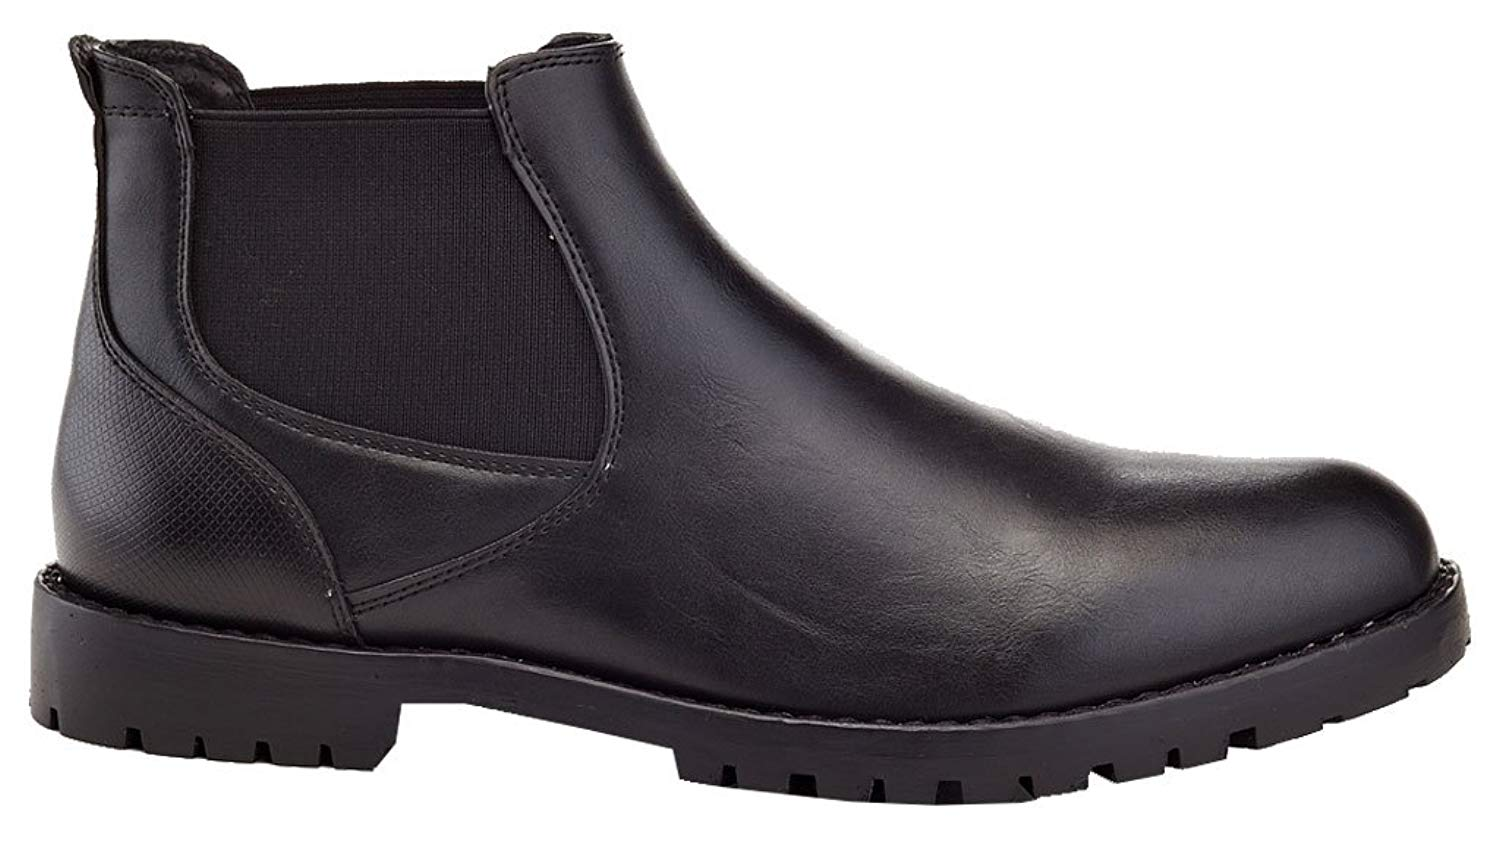 af5bc654071 Cheap Chelsea Boots Dress, find Chelsea Boots Dress deals on line at ...